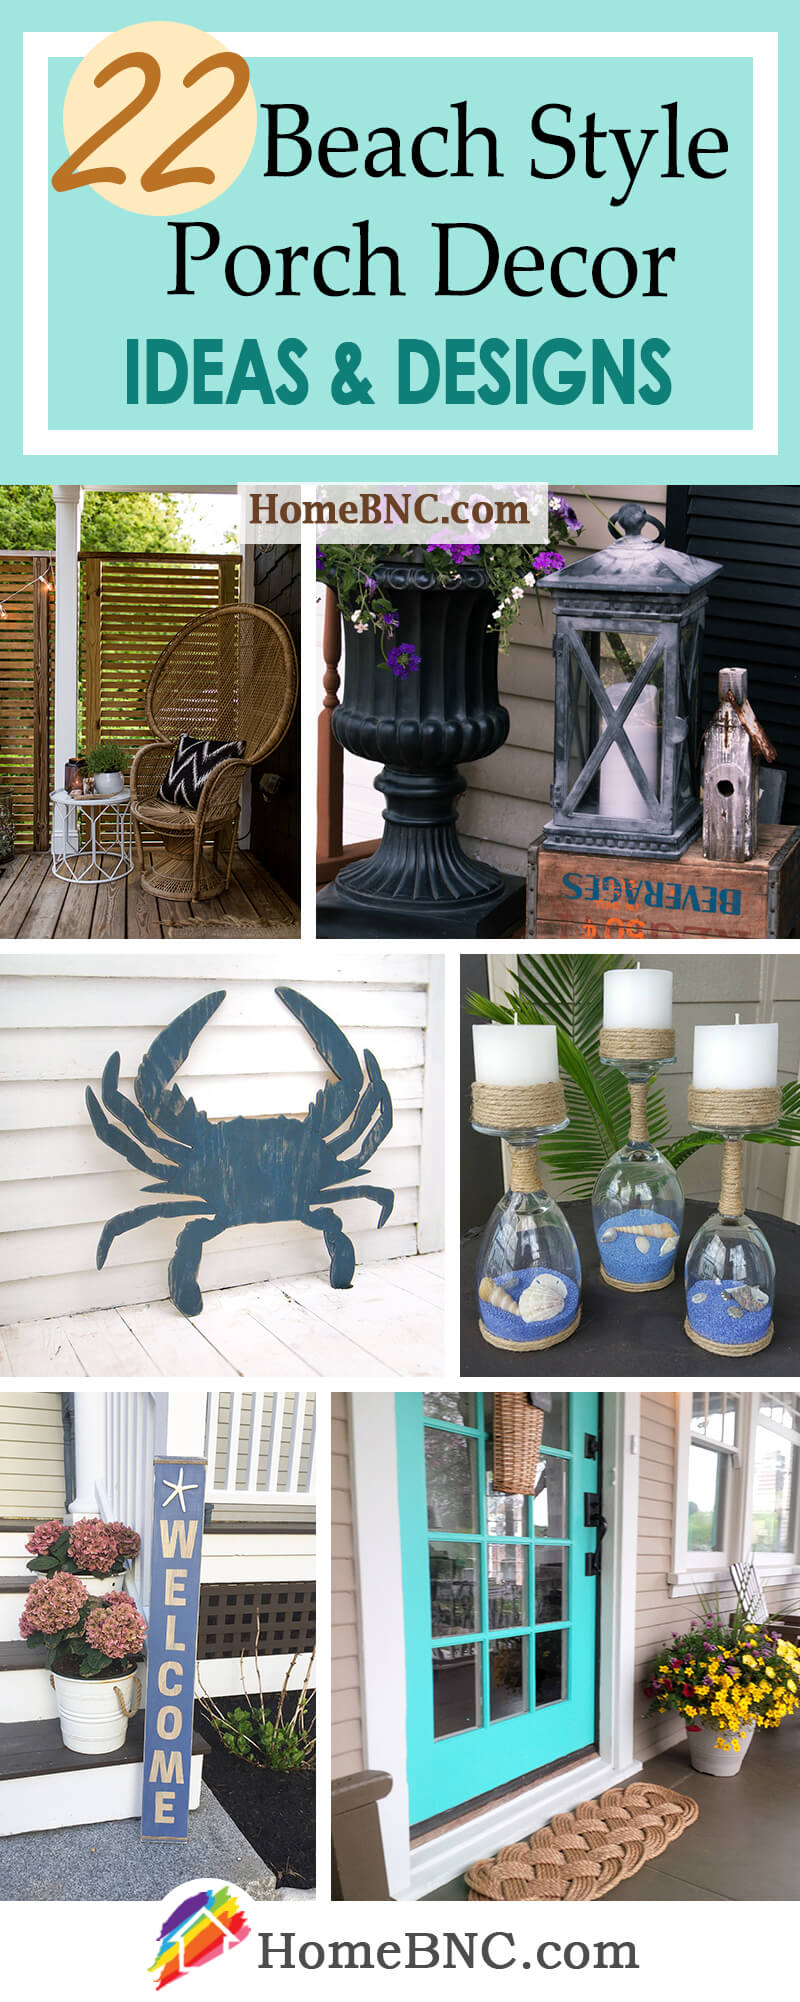 28 Best Beach Style Porch Decoration Ideas and Designs for 28